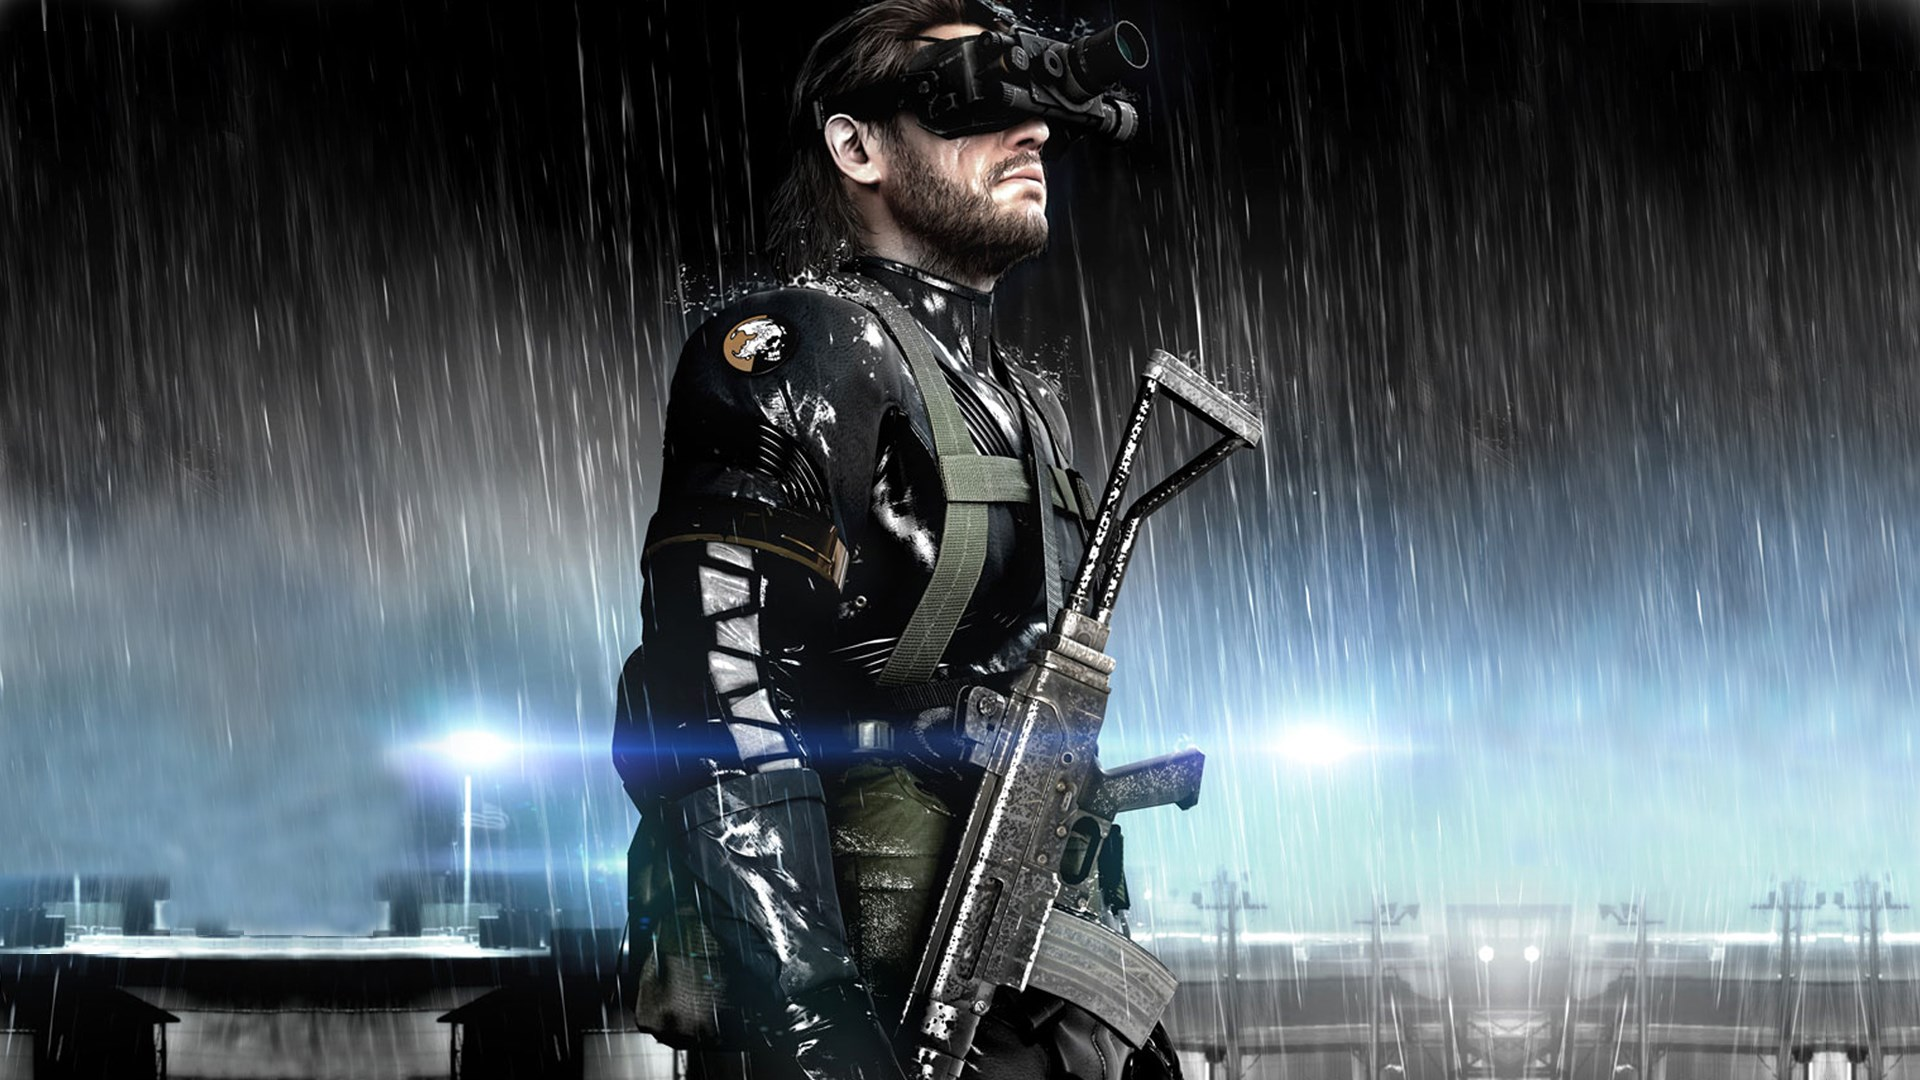 1920x1080-Image-for-Desktop-metal-gear-solid-v-ground-zeroes-wallpaper-wp360832